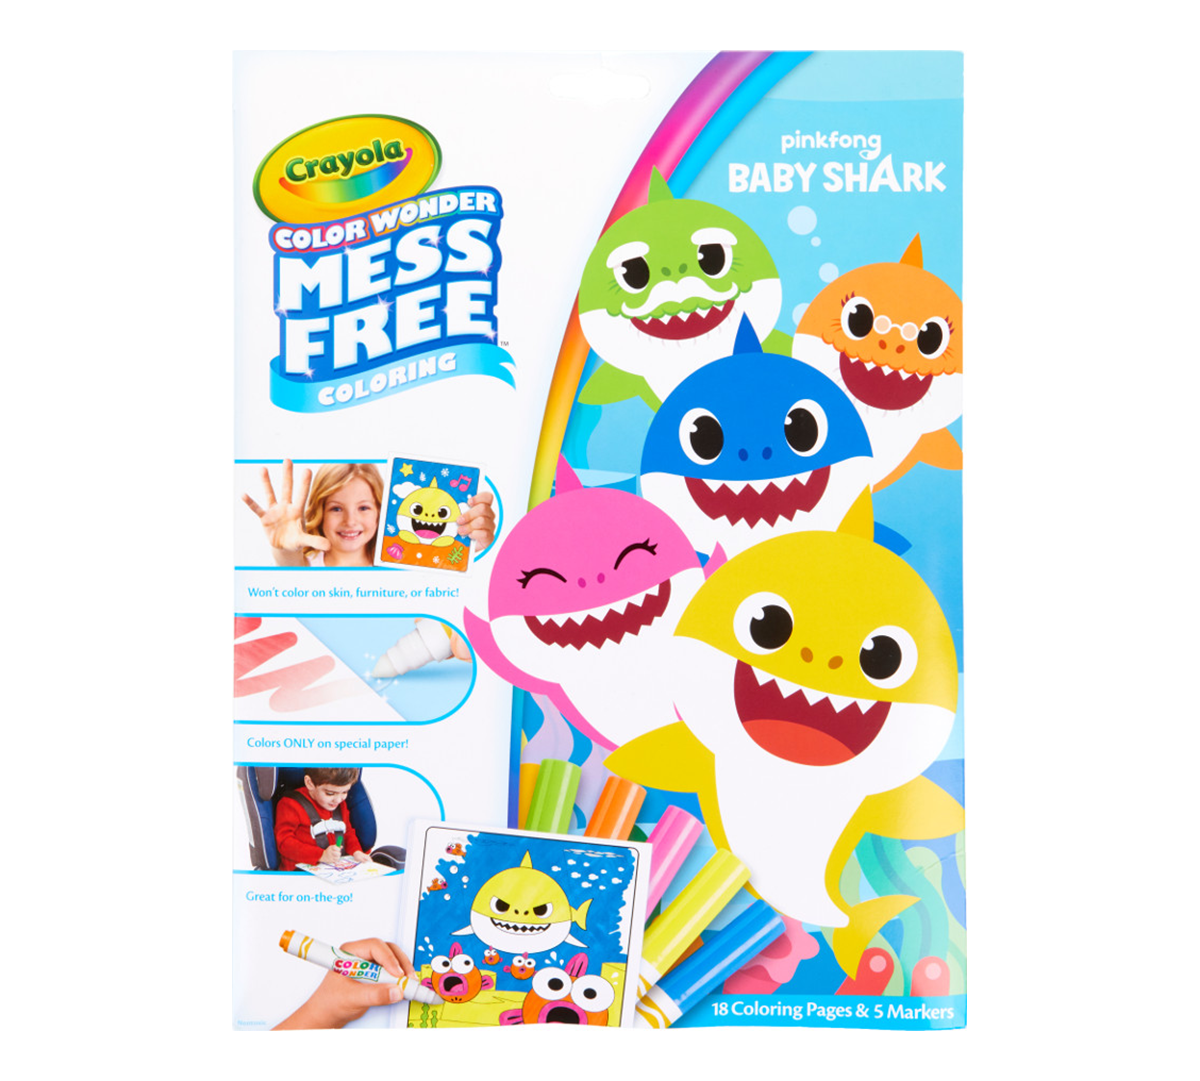 Crayola Color Wonder Baby Shark Coloring Pages, Mess Free Coloring    Crayola.com   Crayola